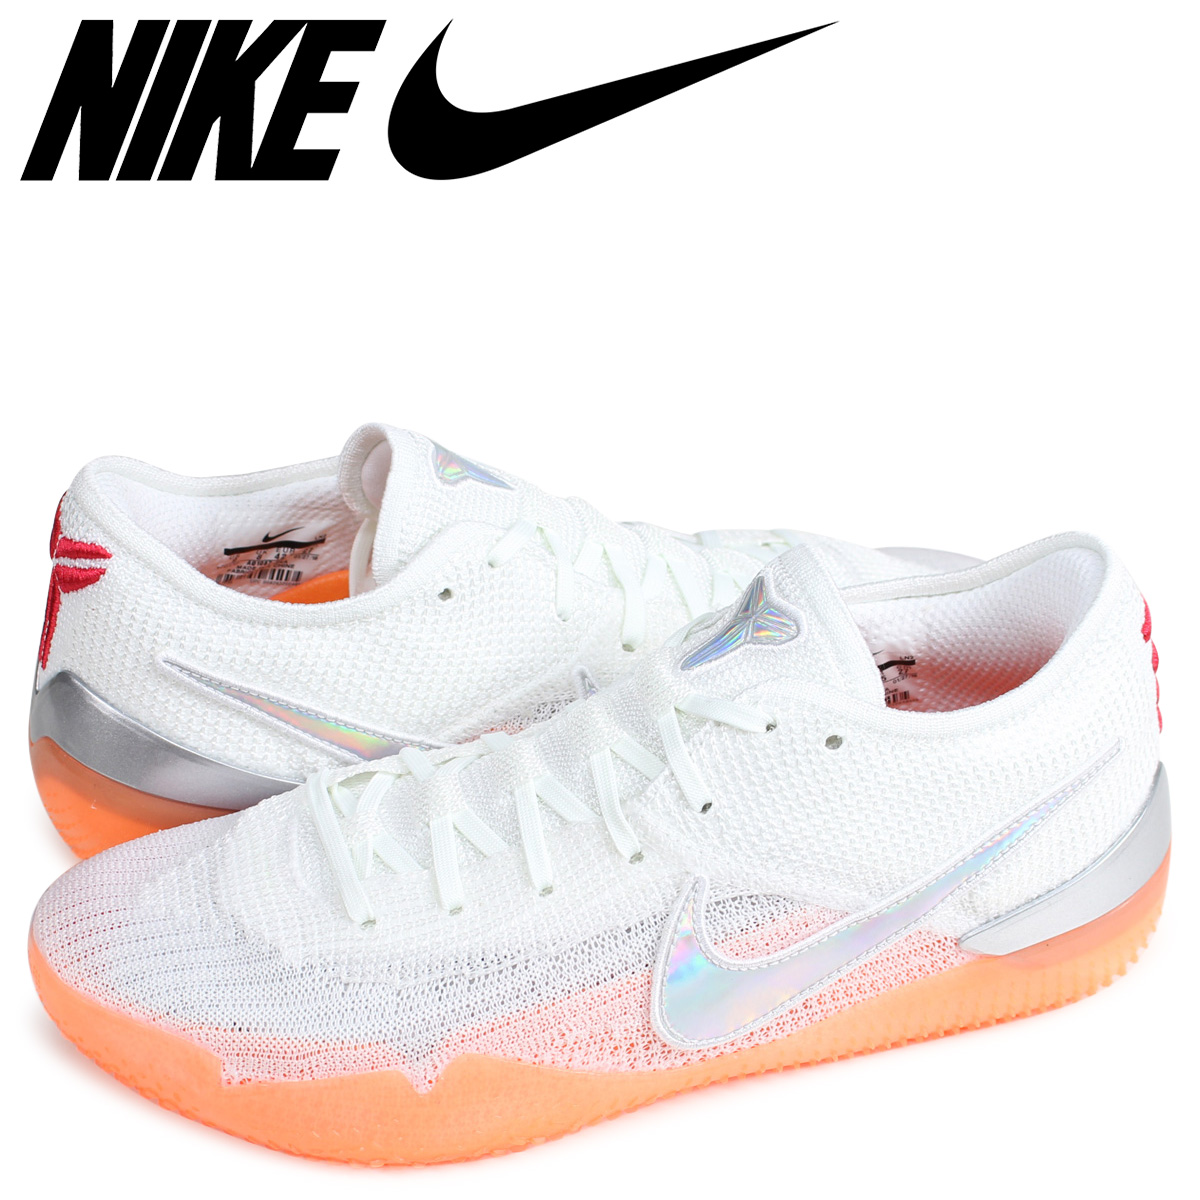 1d84b98a090d Whats up Sports  NIKE KOBE AD NXT 360 Nike Corby sneakers men AQ1087 ...